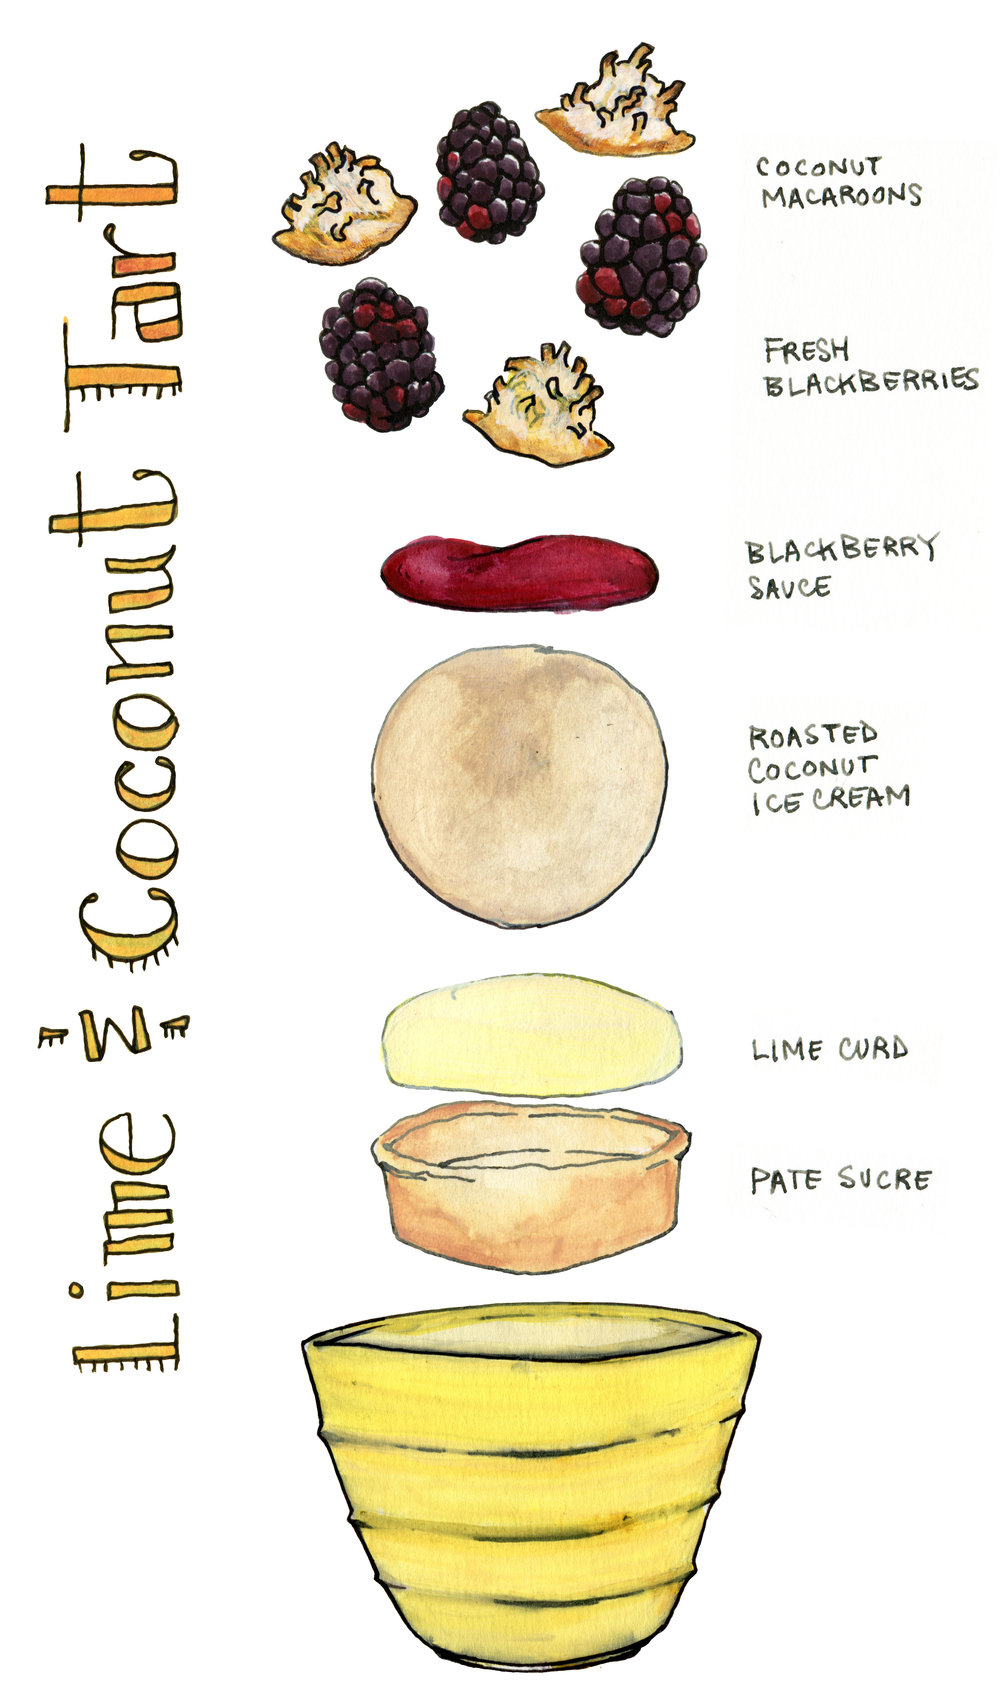 Foreign & Domestic Desserts